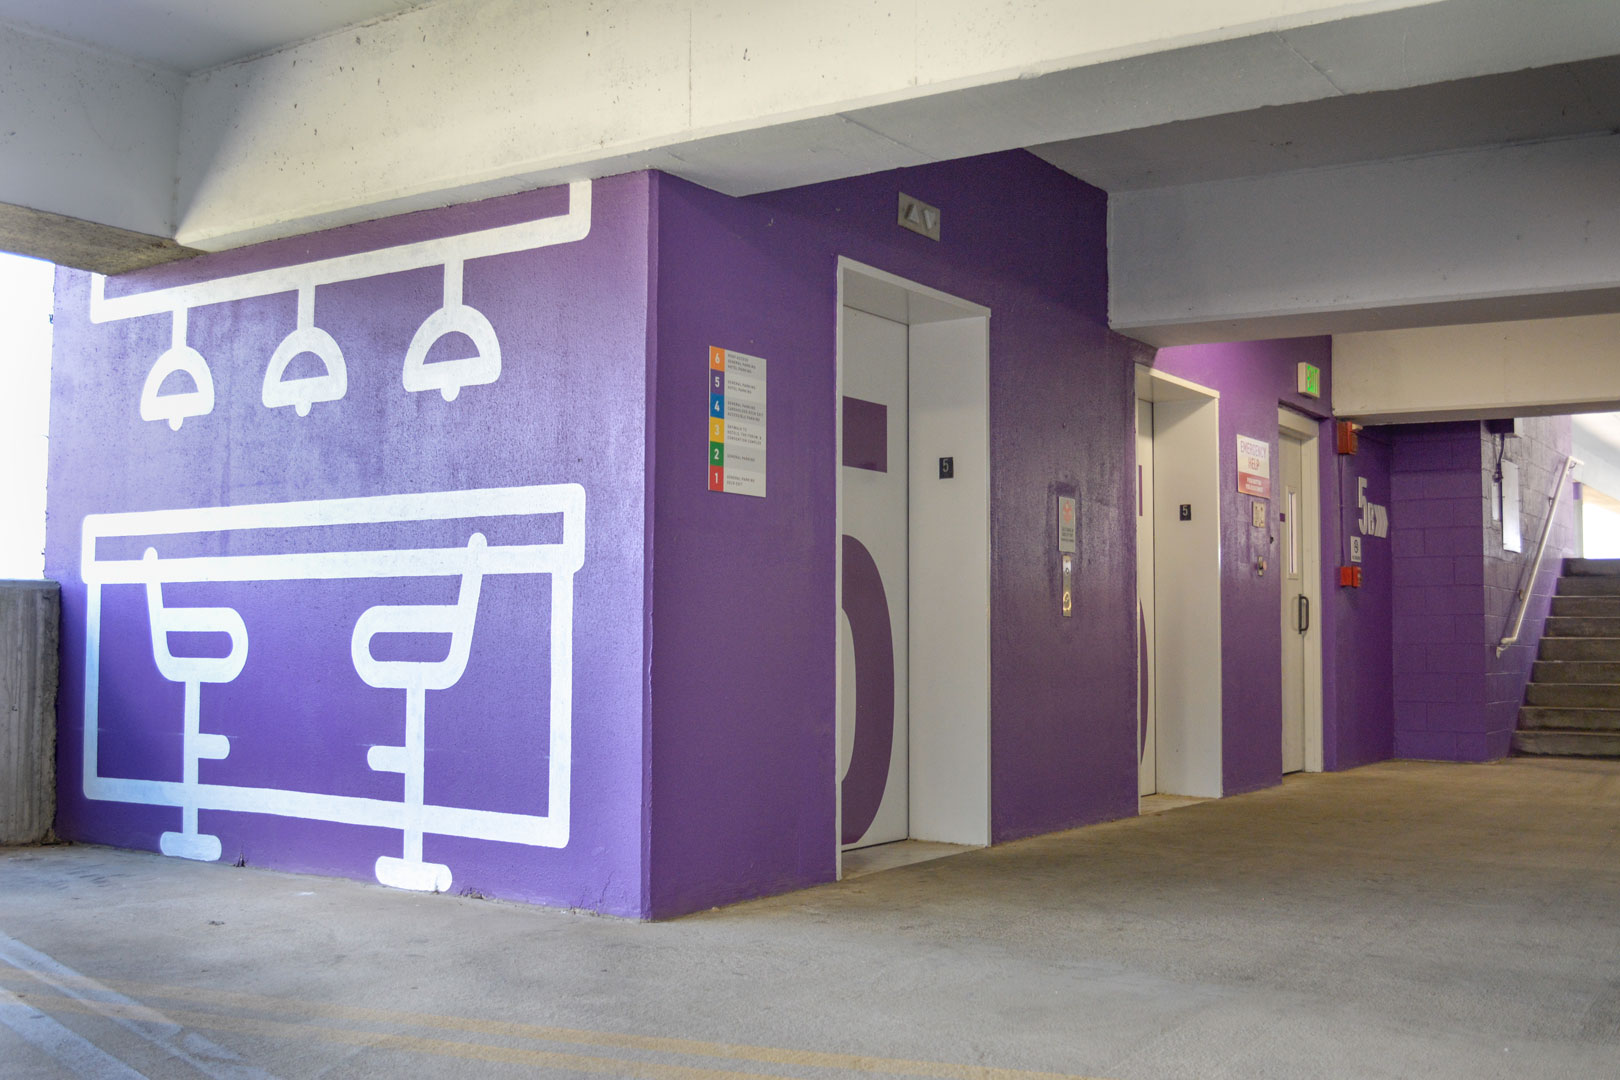 Painted environmental graphics on painted elevator lobby with large level ID graphics in the 22nd street BJCC parking deck